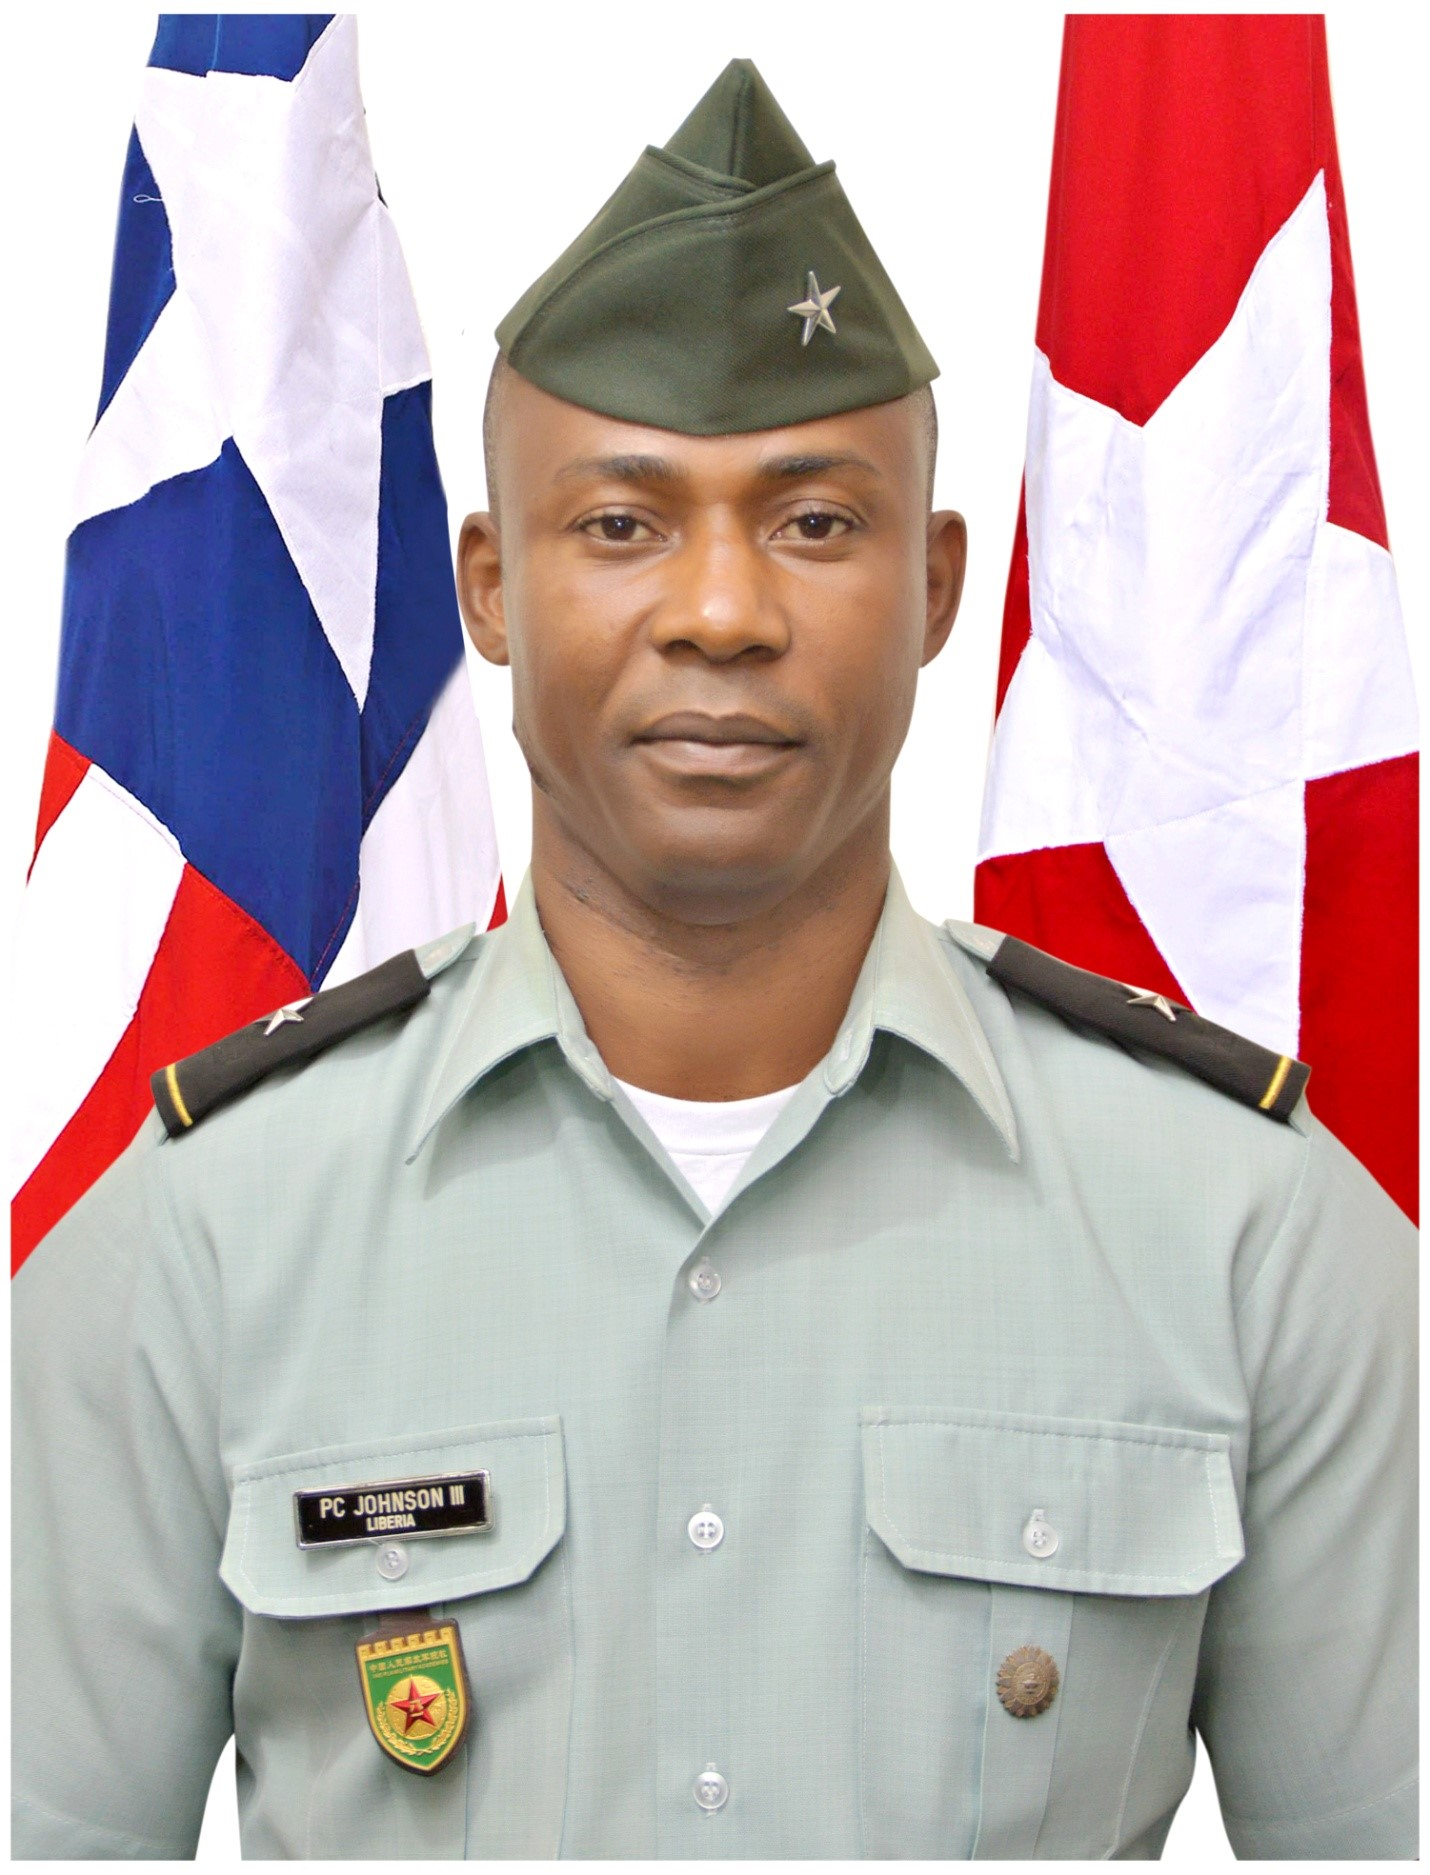 http://mod.gov.lr/the-forces/deputy-chief-of-staff-dcos/